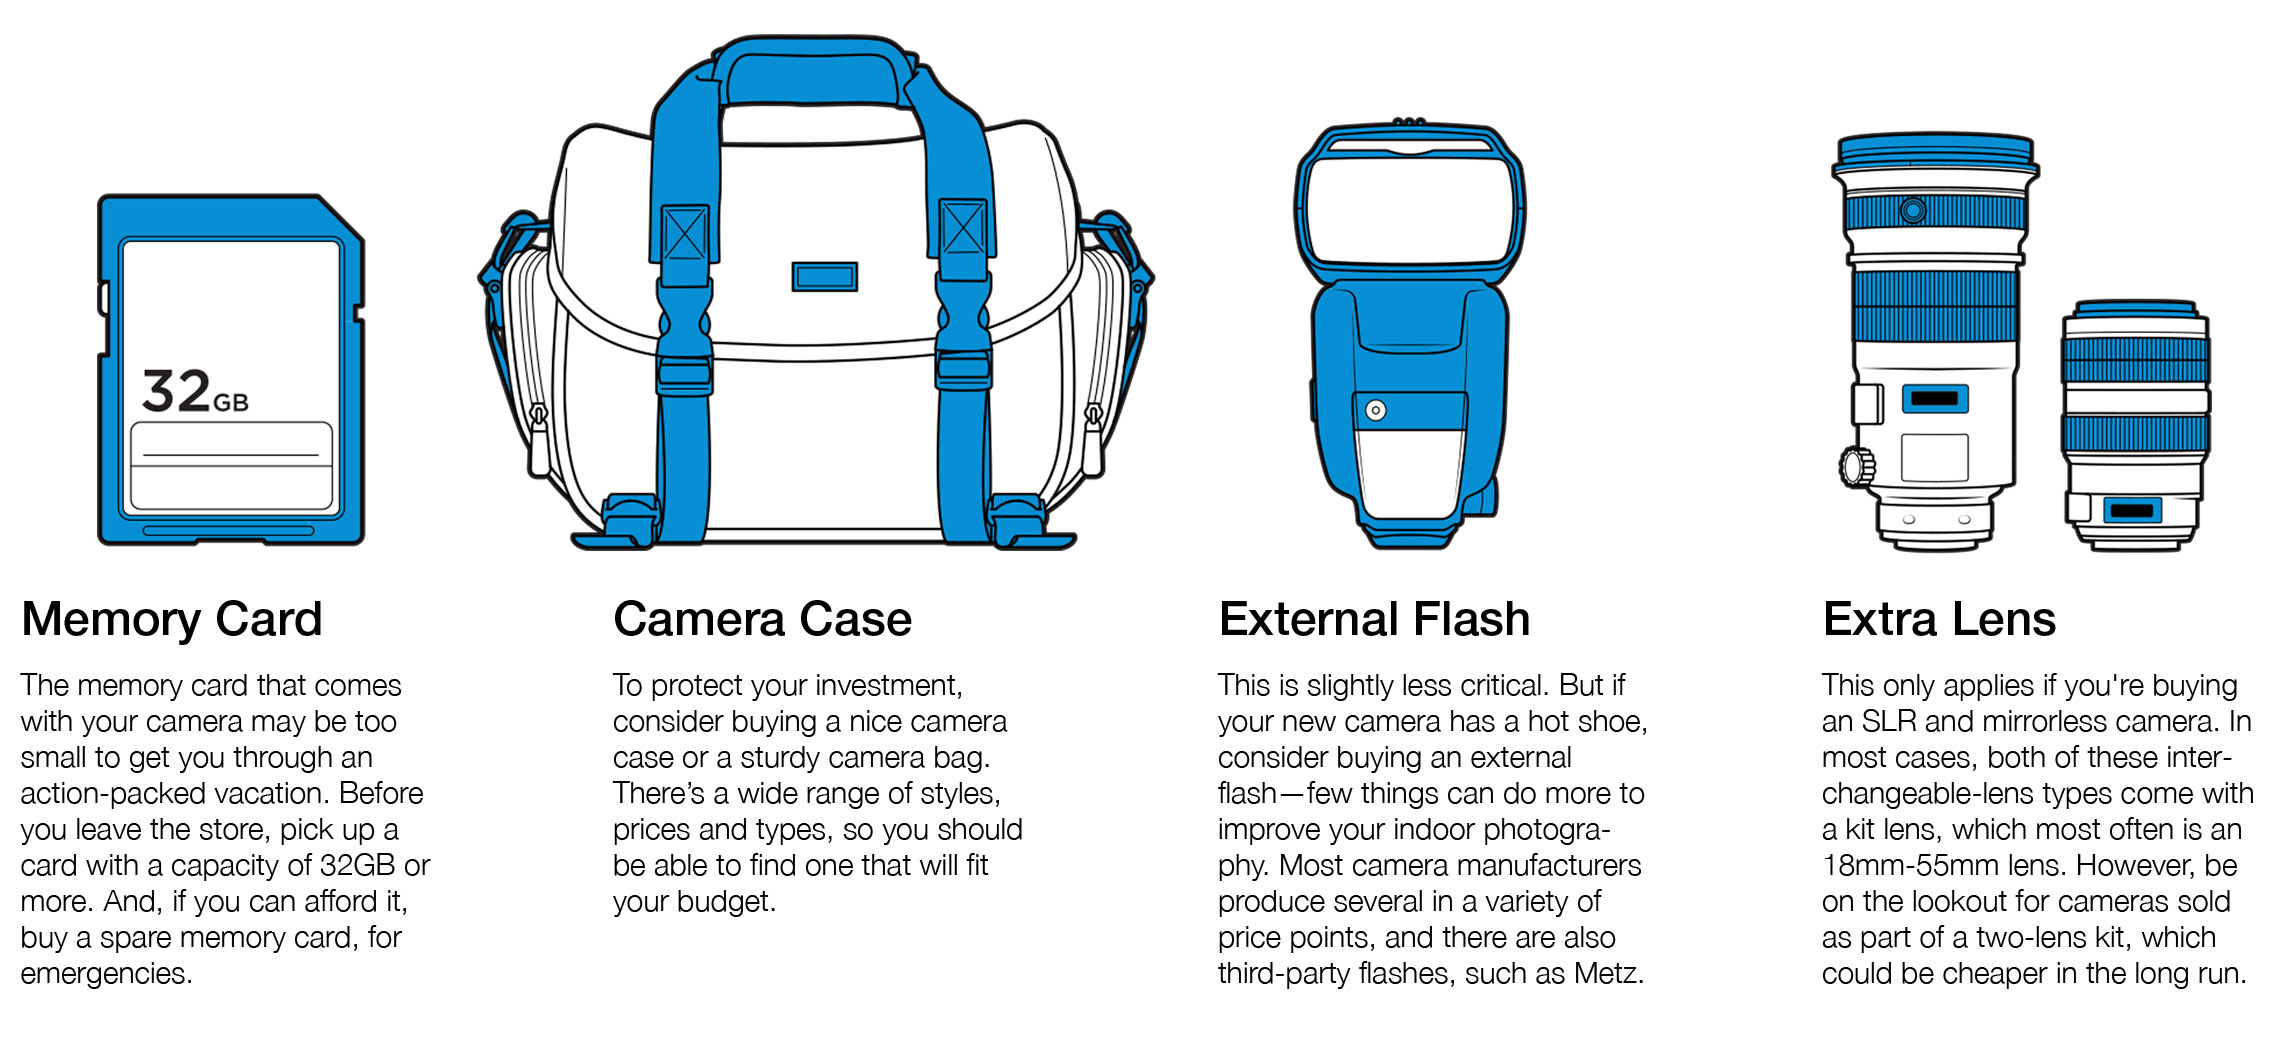 An illustration of a memory card, a camera case, an external flash, and an extra lens.